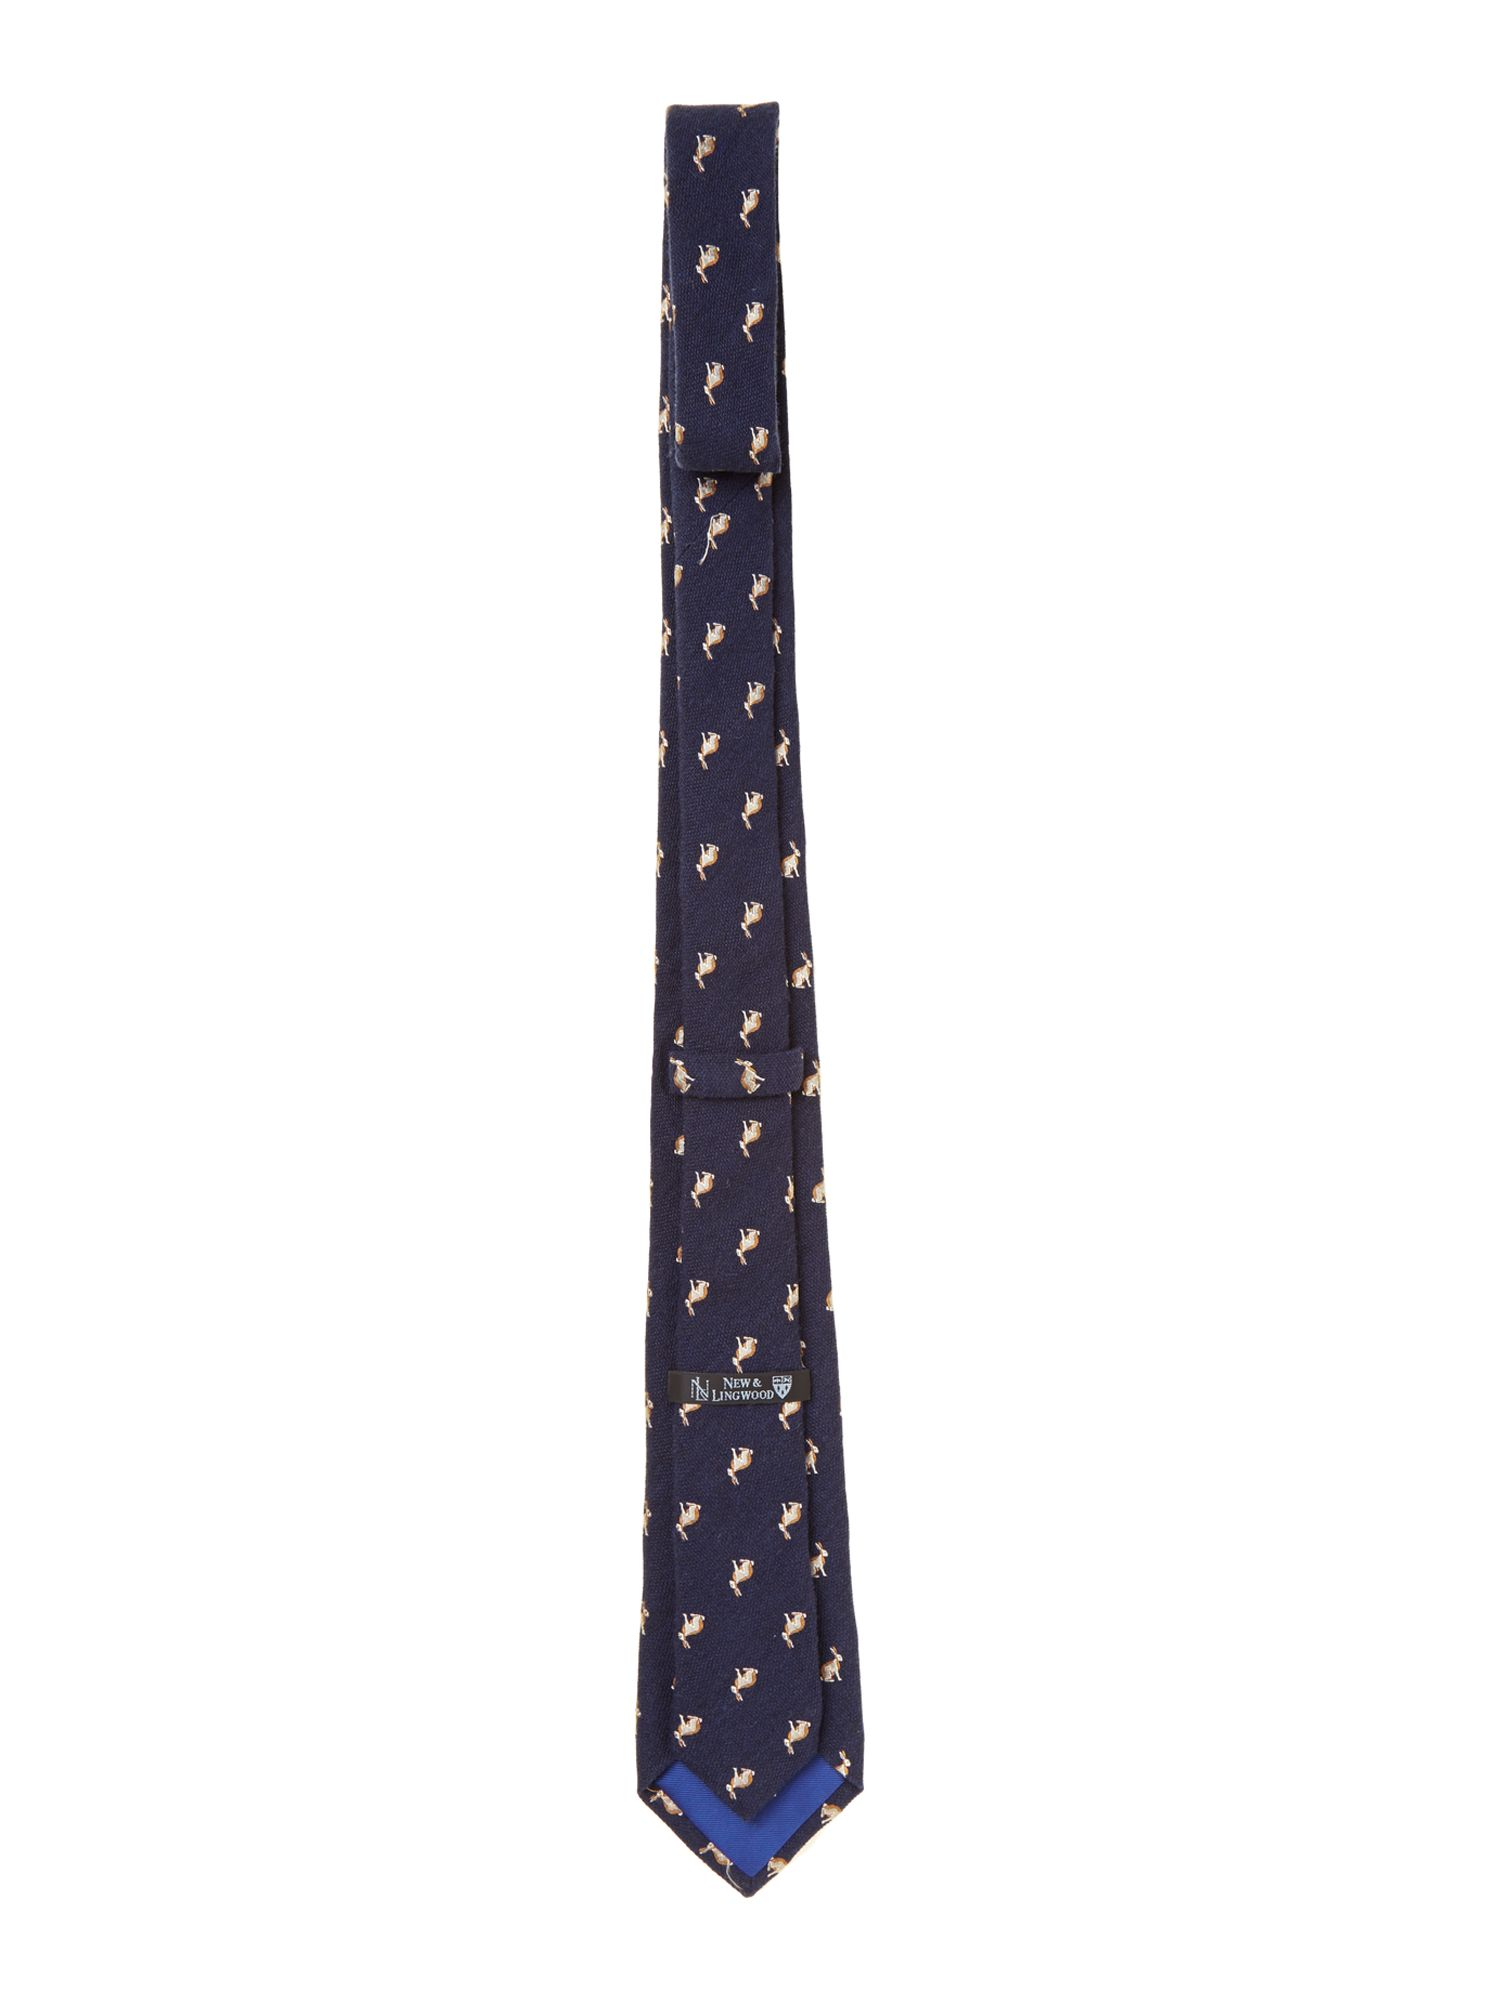 Springthorpe rabbit jacquard silk wool tie